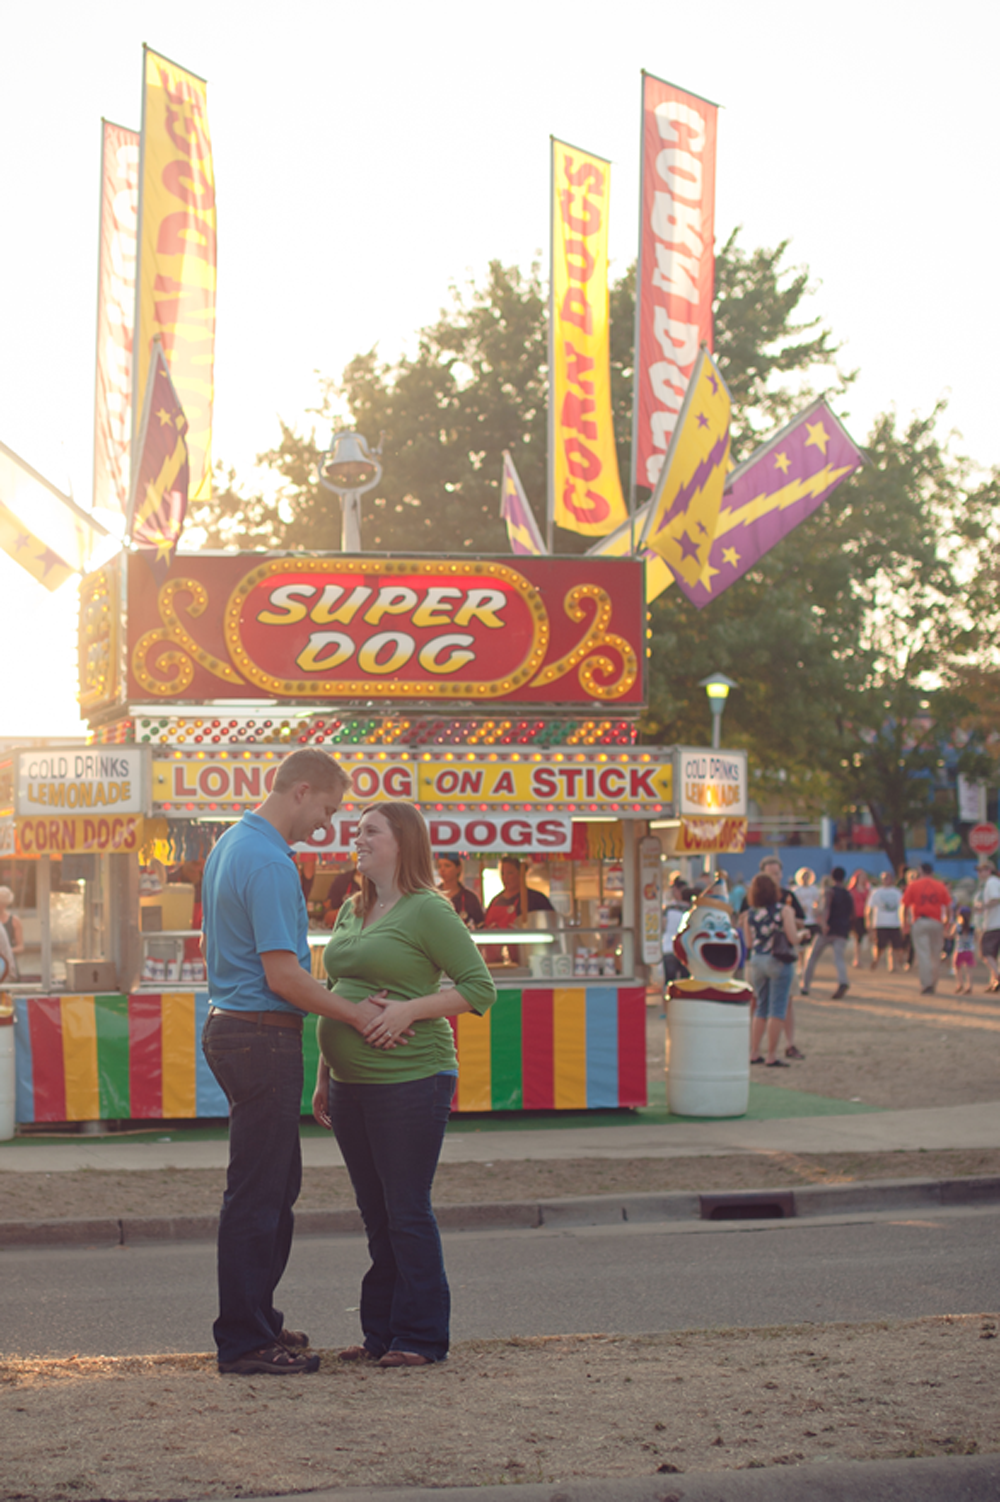 Maternity photo taken at the Minnesota State Fair in St. Paul near Minneapolis by High Heel Photography